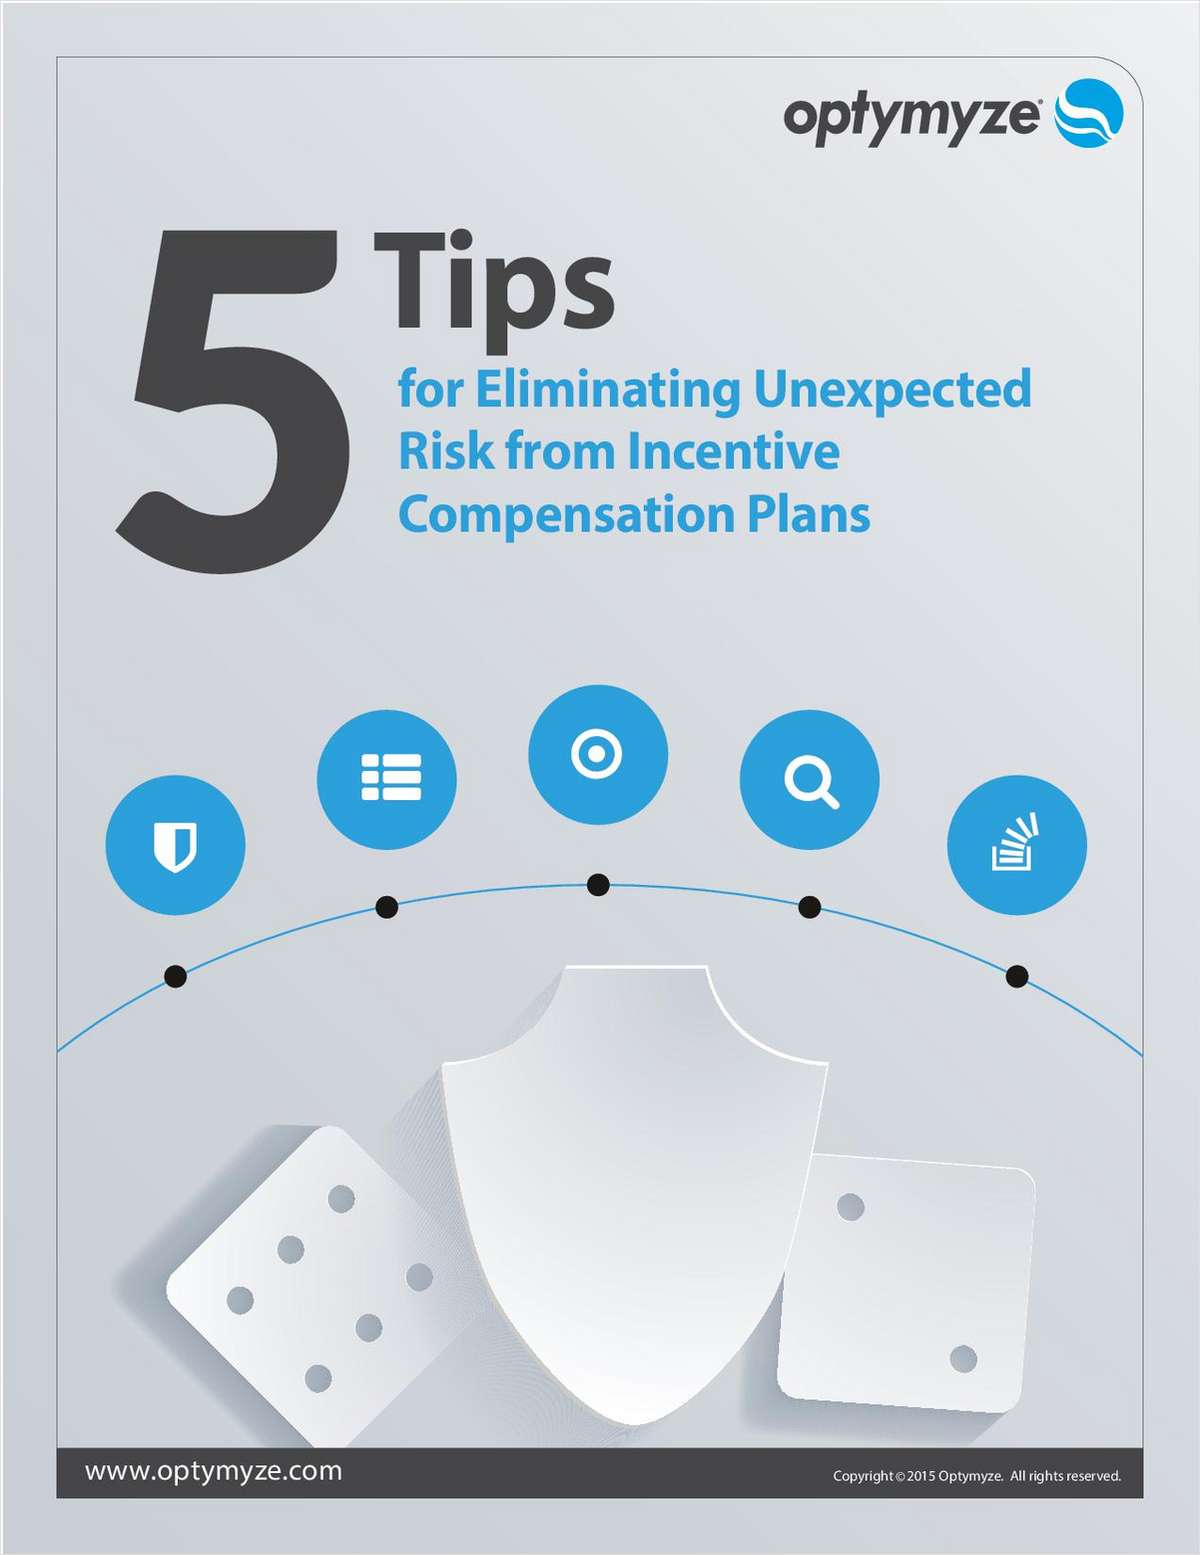 5 Tips for Eliminating Unexpected Risk from Incentive Compensation Plans